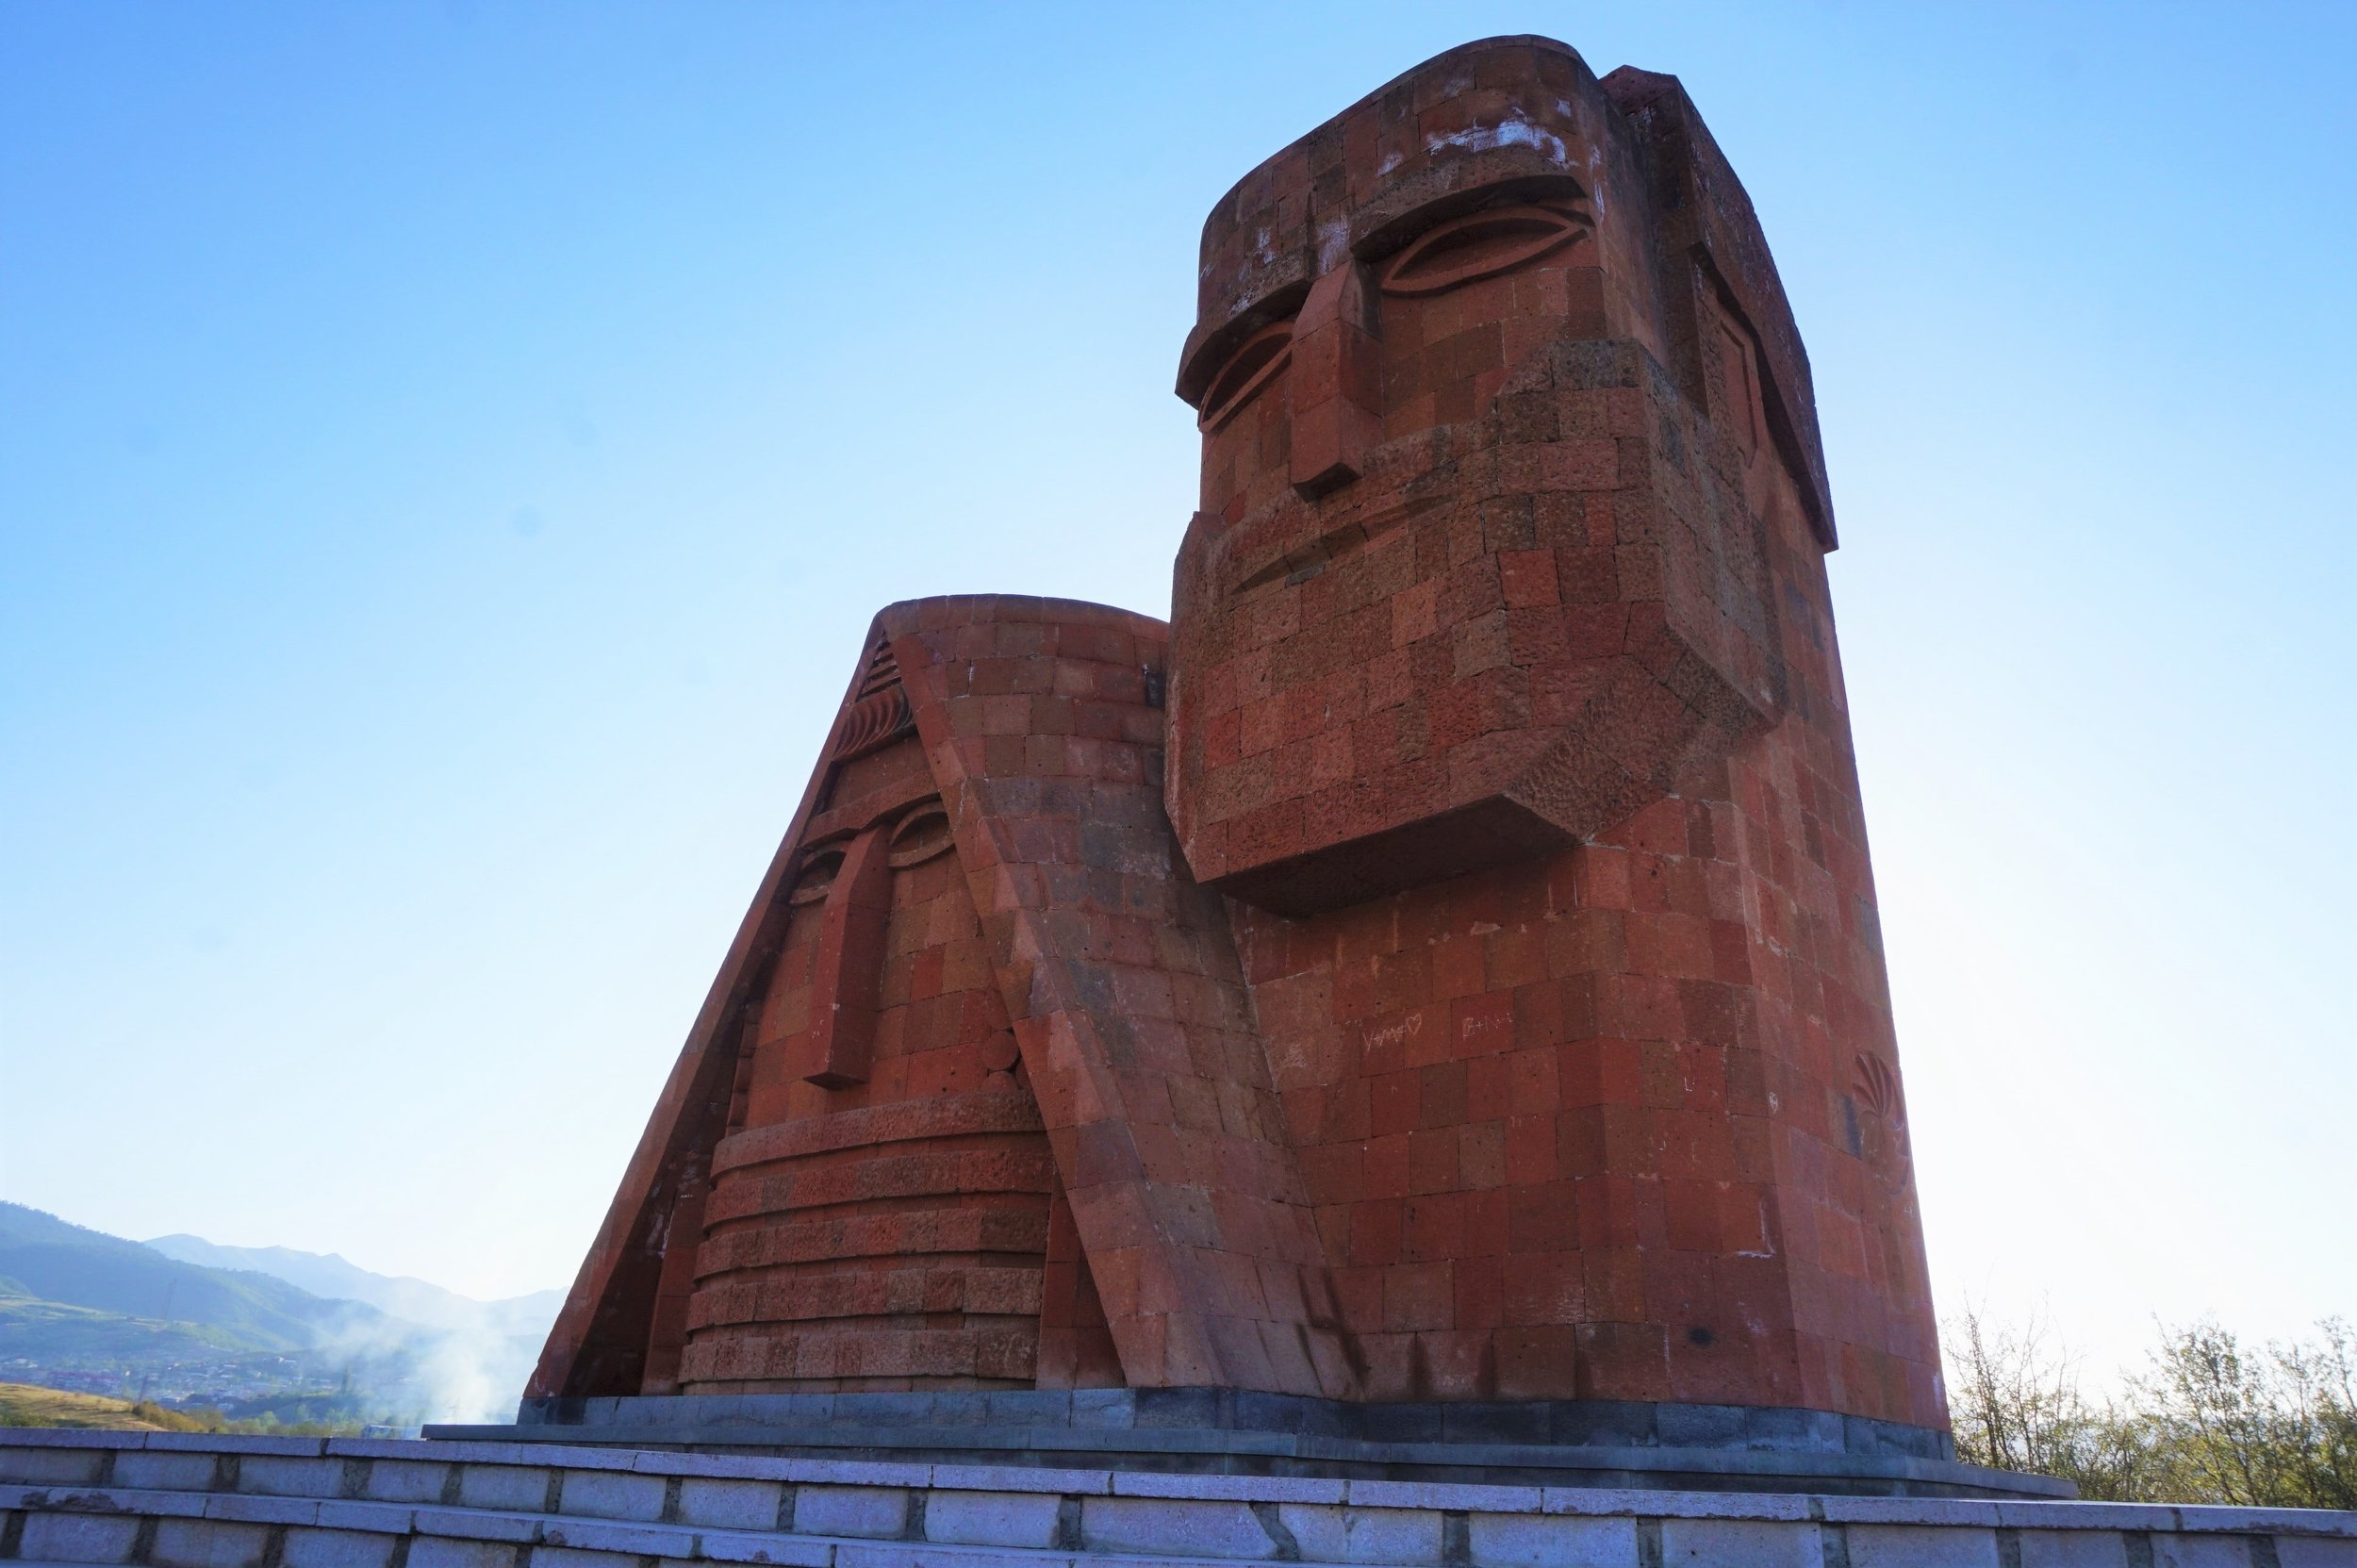 The 'We Are Our Mountains' monument is a must visit in Artsakh. You should include a stop in Stephanakert in your Armenia itinerary!